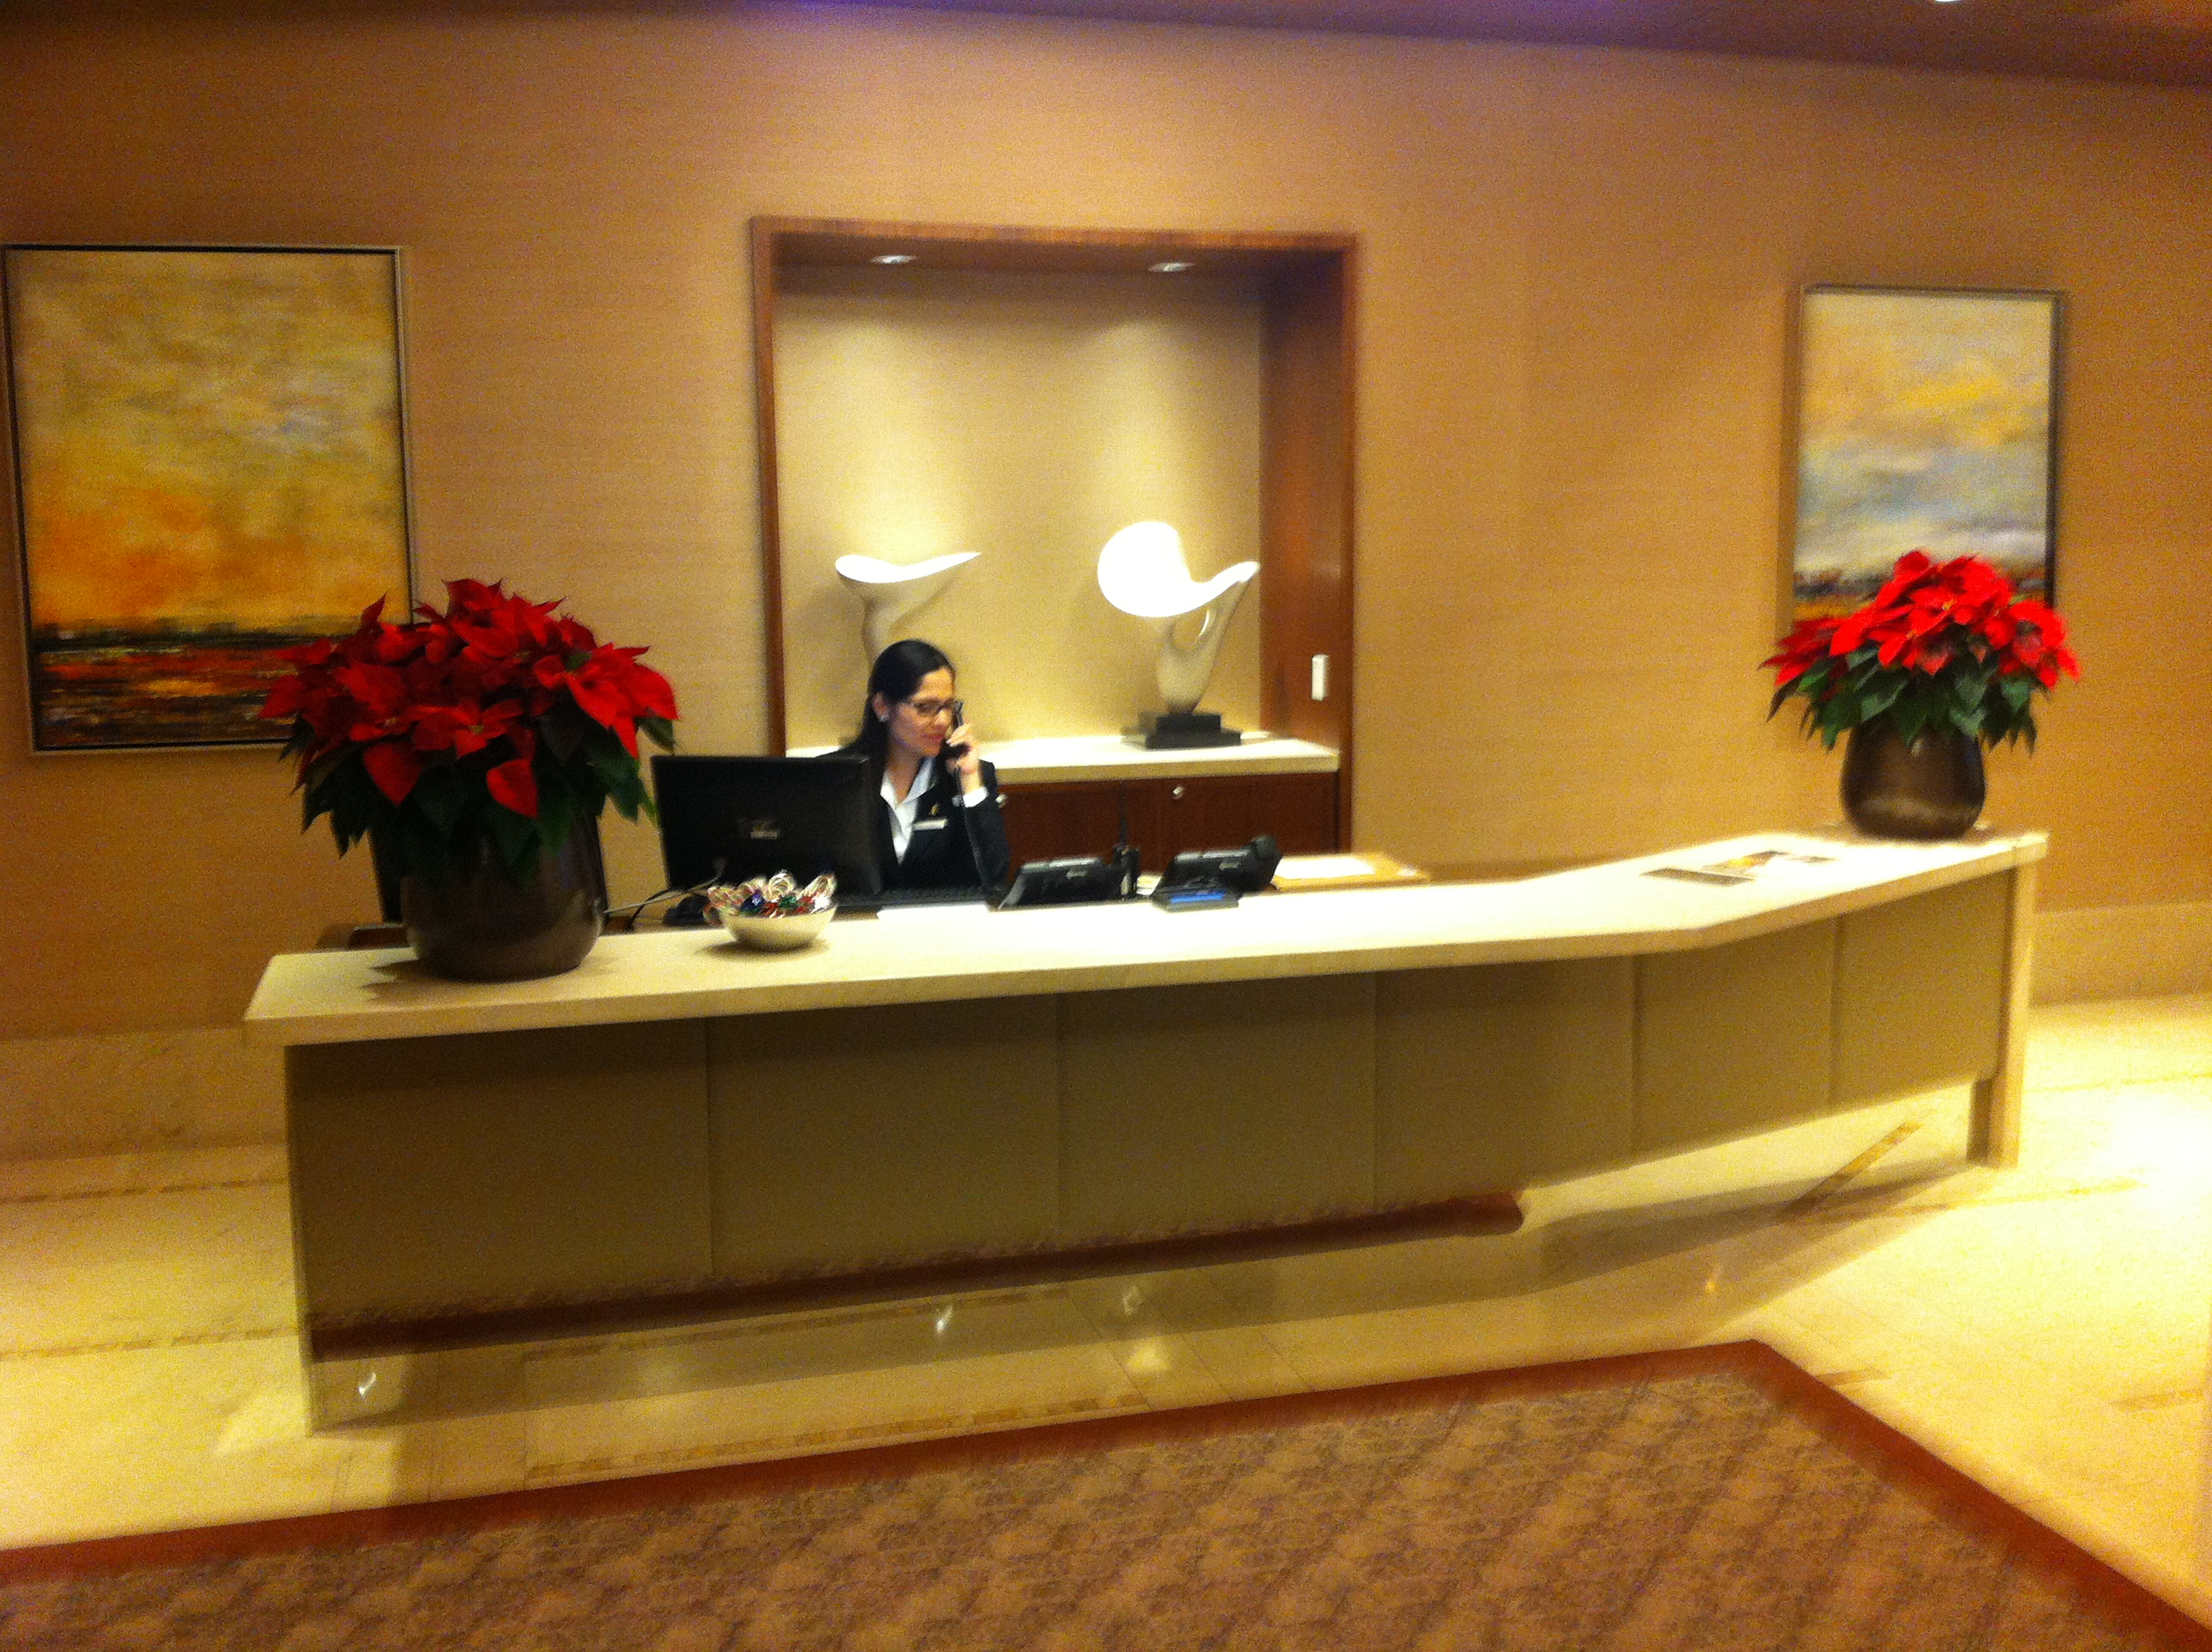 Resident concierge services